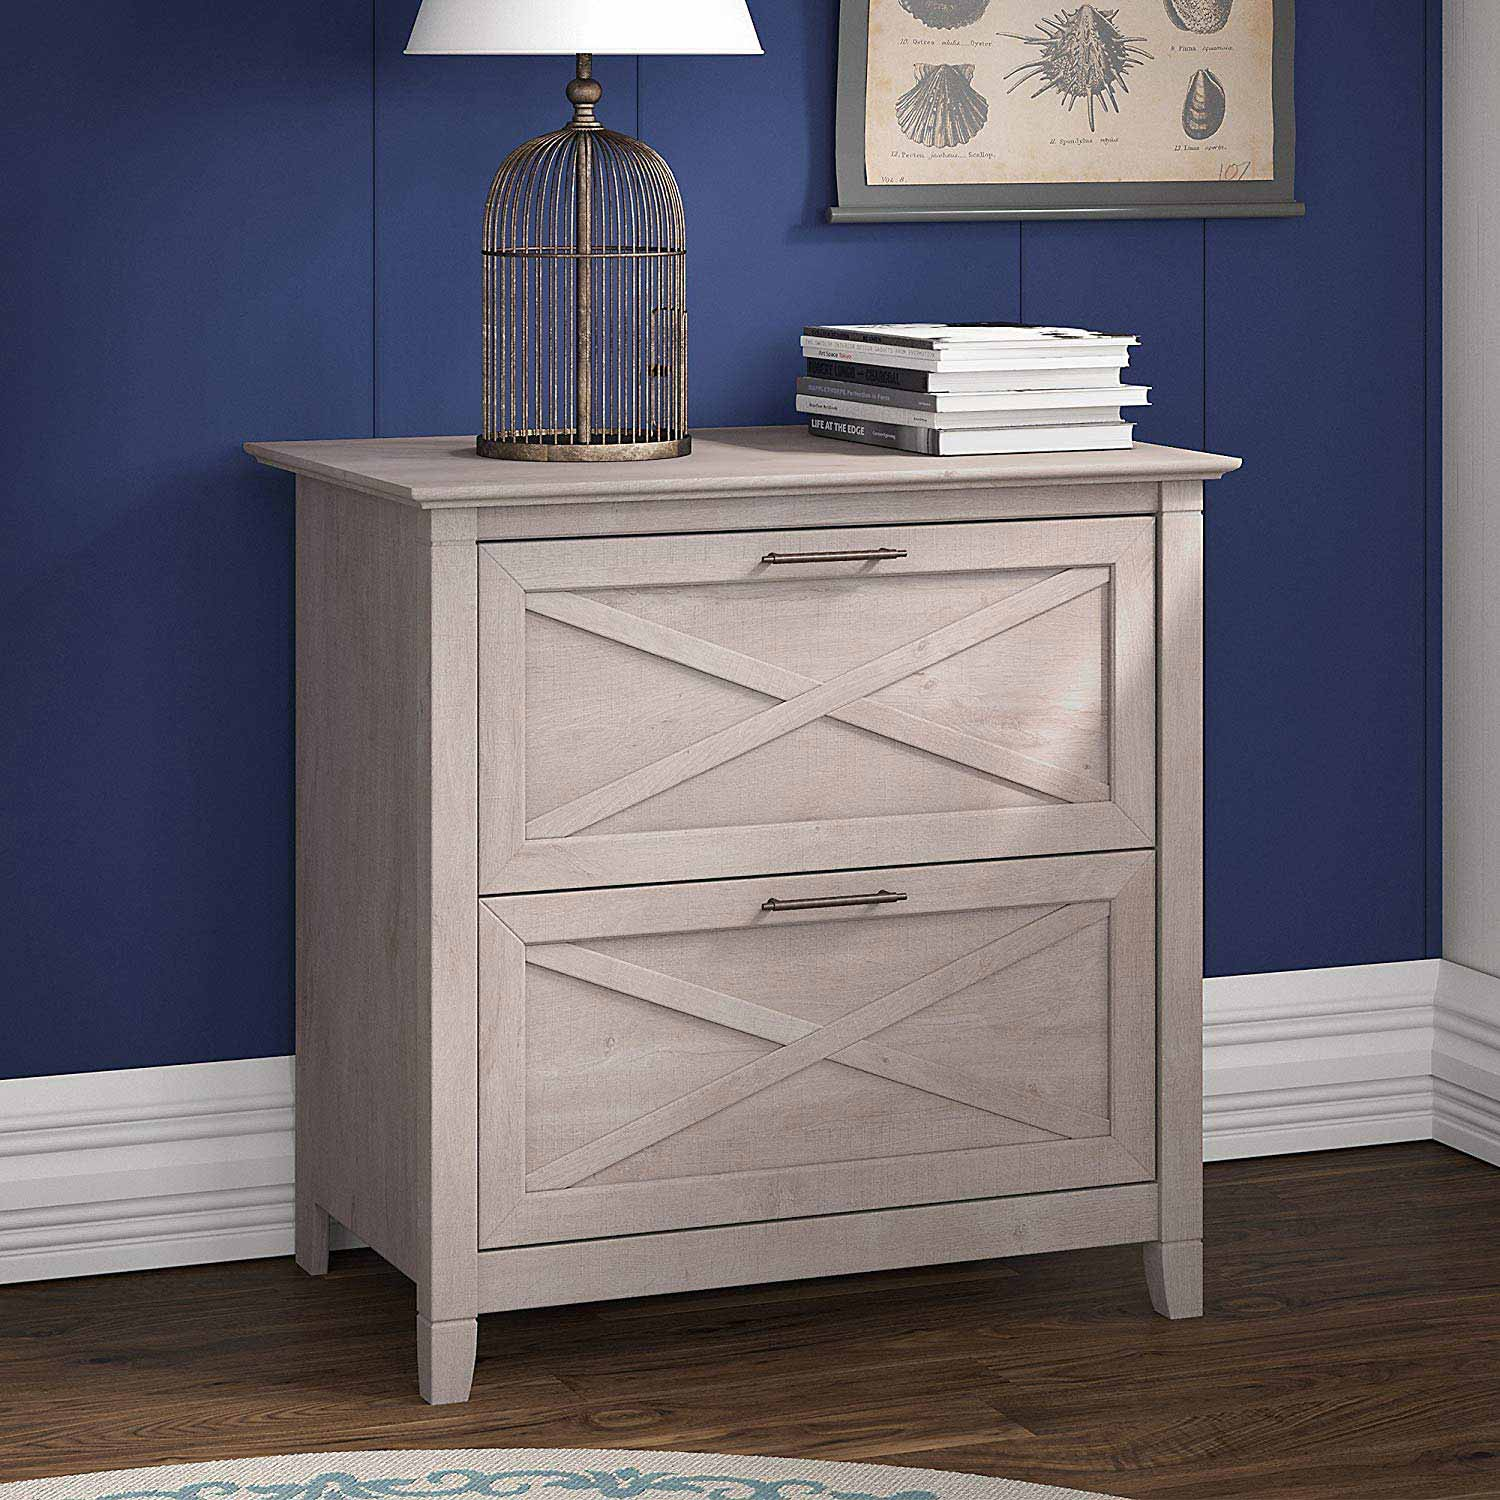 A secure file cabinet can protect your files without looking like its meant for a corner office.